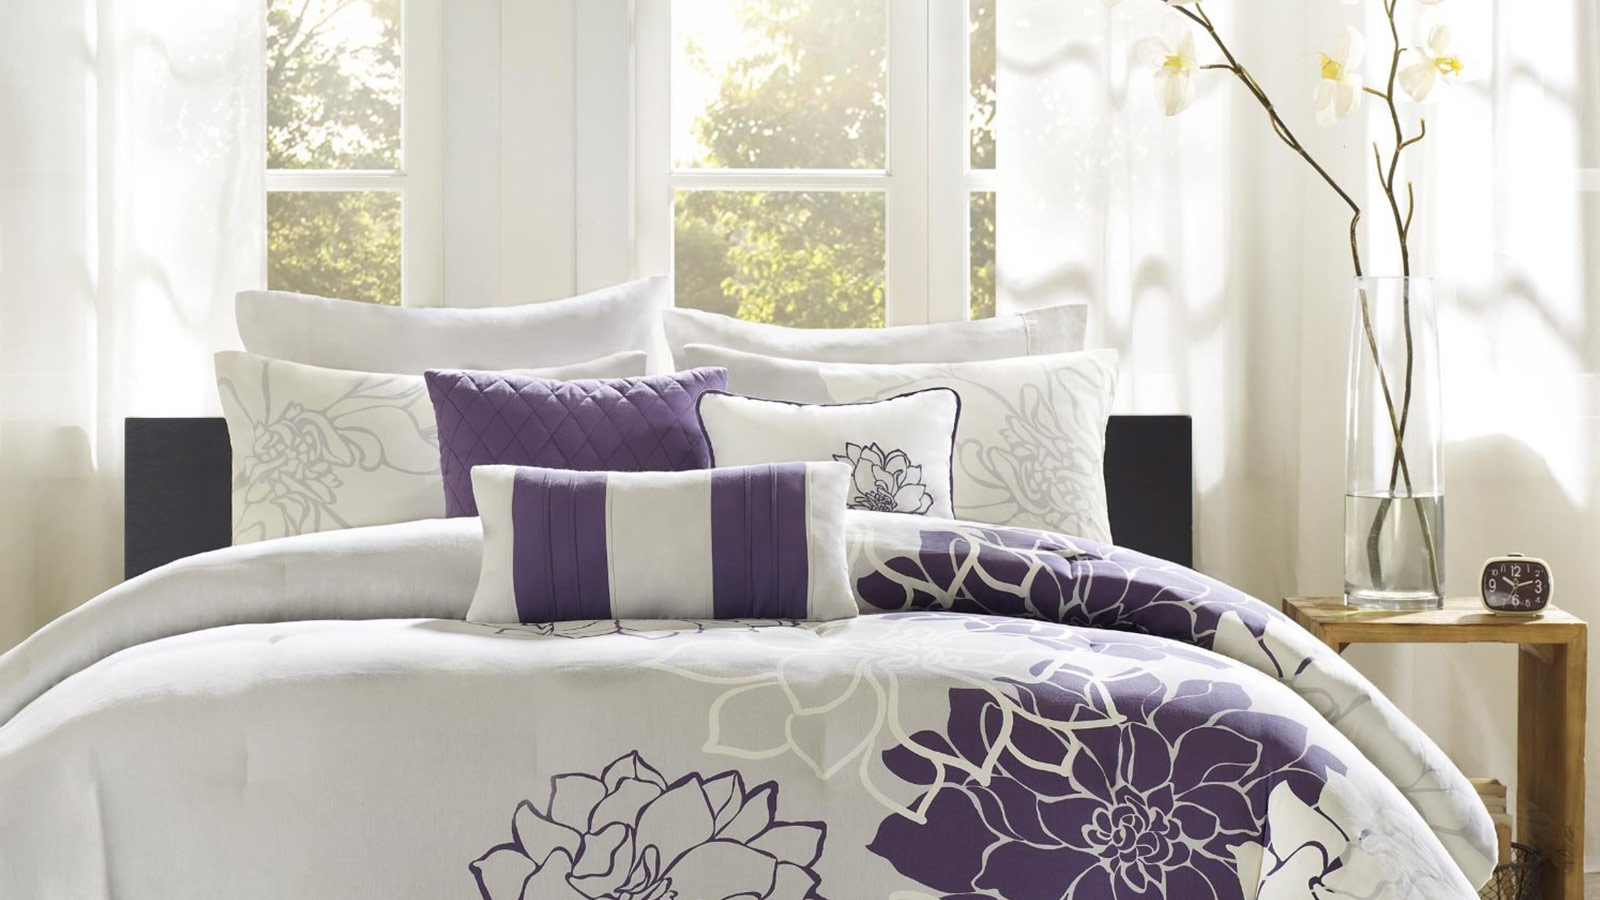 modern comforter sets to give your bedroom a fresh new look  -  modern comforter sets to give your bedroom a fresh new look